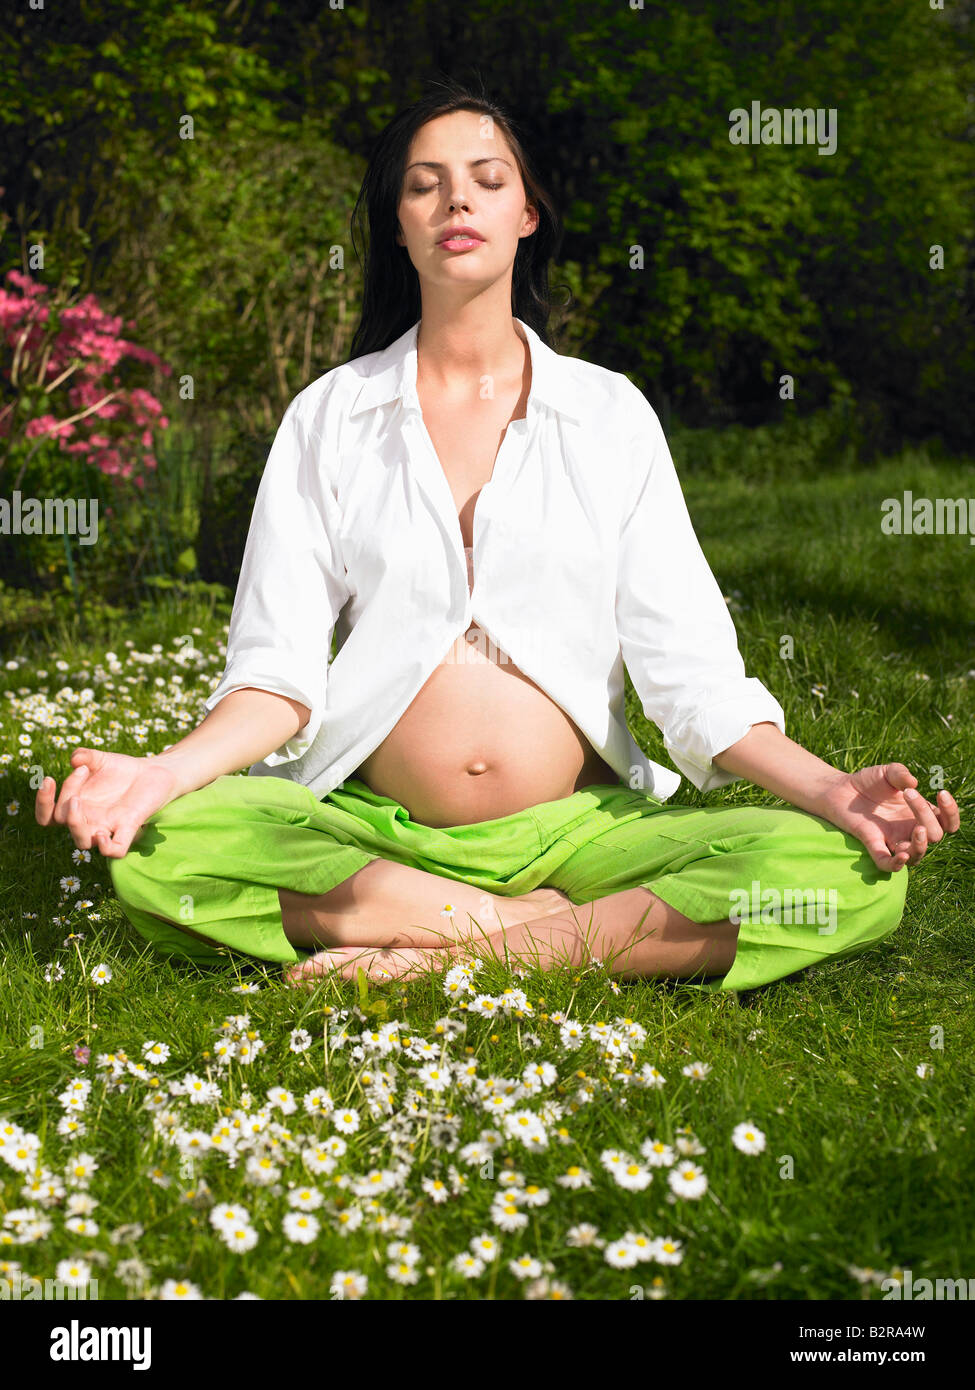 Pregnant woman in a yoga session - Stock Image